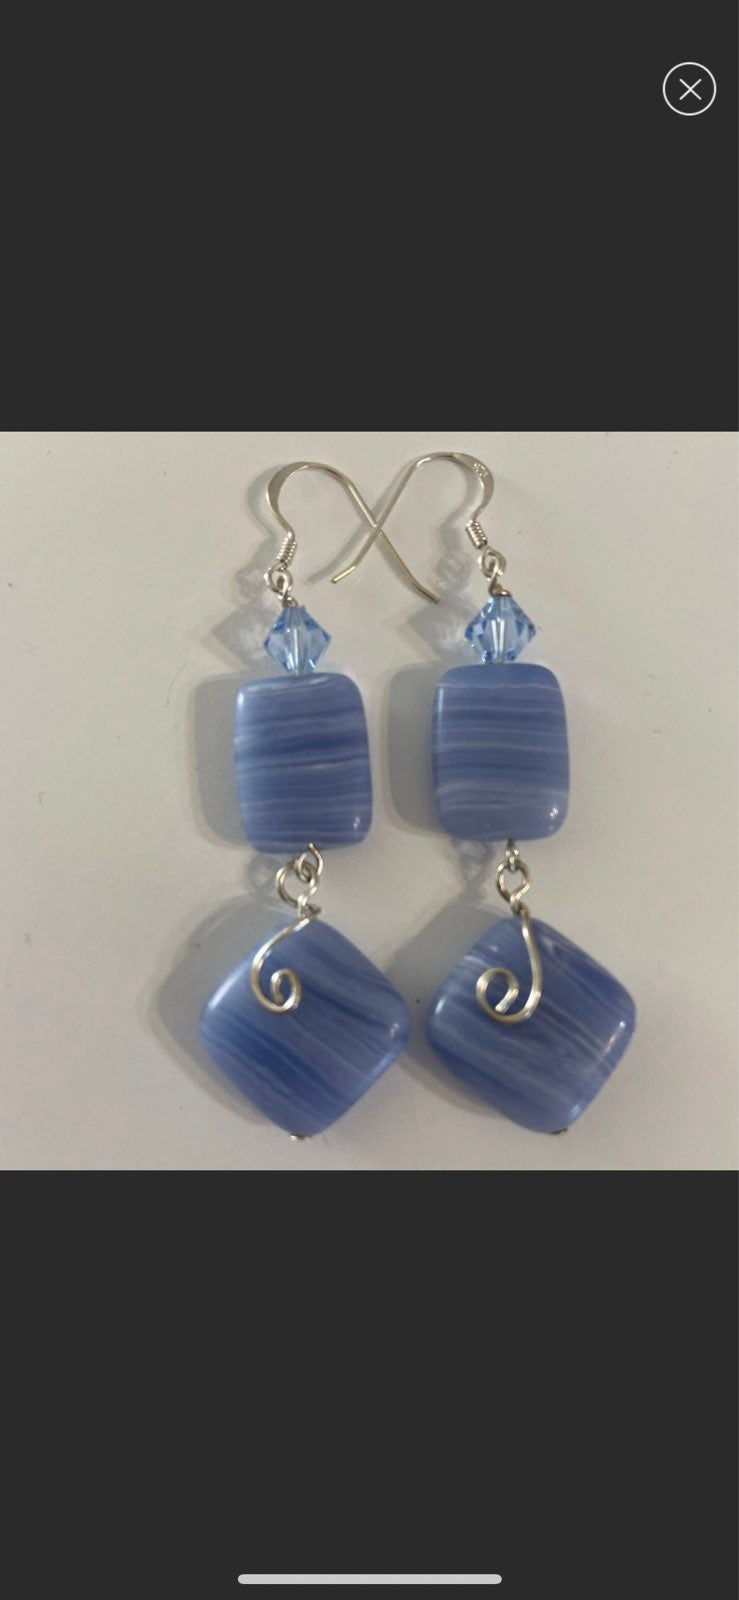 Blue lace agate earrings with swarovski